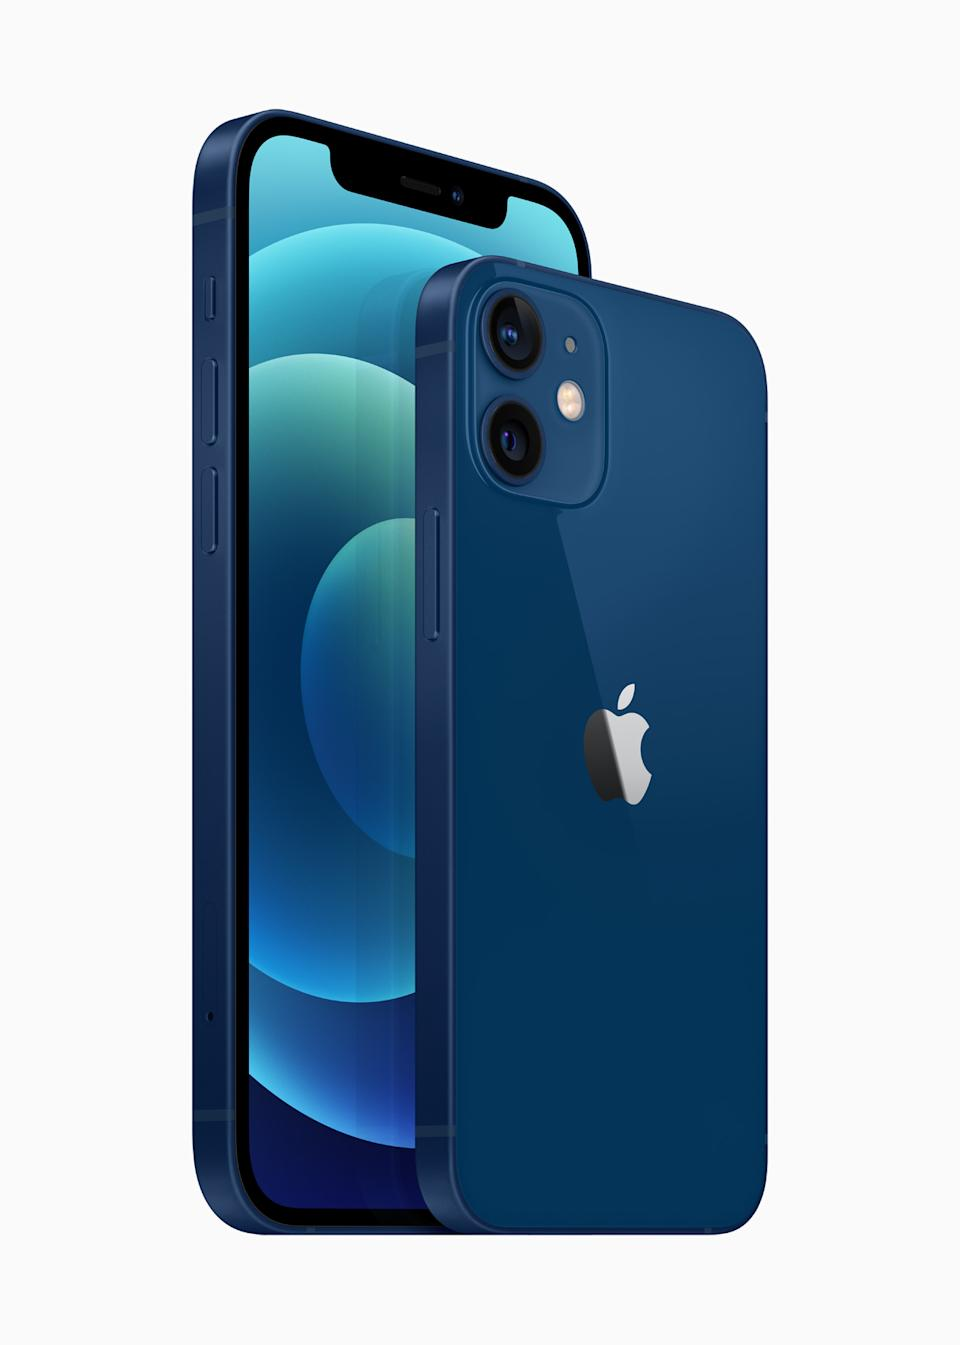 The elevated new design of the 6.1-inch iPhone 12 and 5.4-inch iPhone 12 mini feature edge-to-edge Super Retina XDR displays for an immersive viewing experience. (PHOTO: Apple)